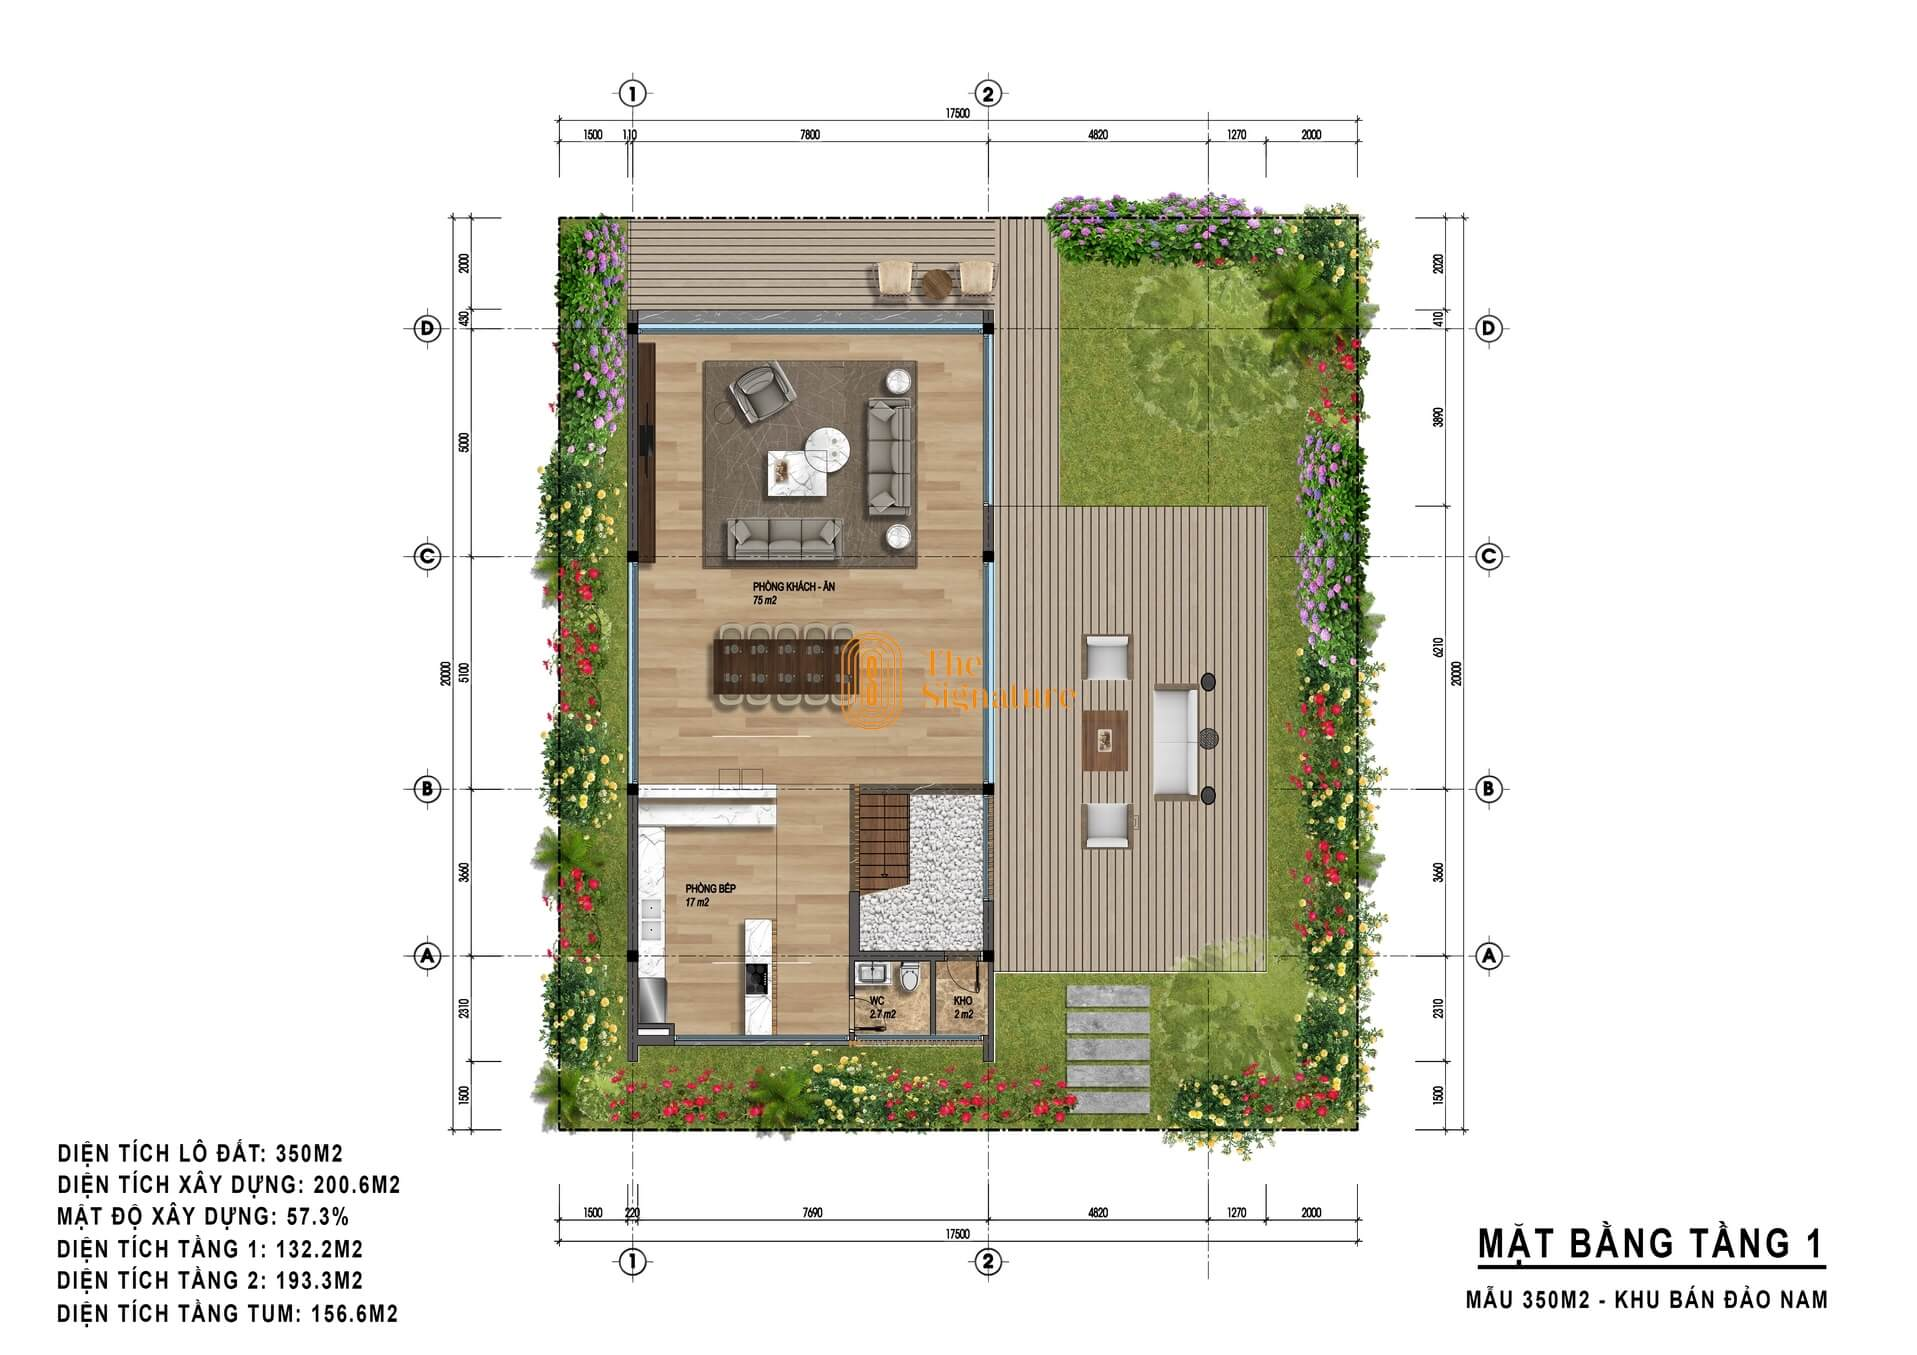 mặt bằng tầng 1 biệt thự the signature flamingo 350m2